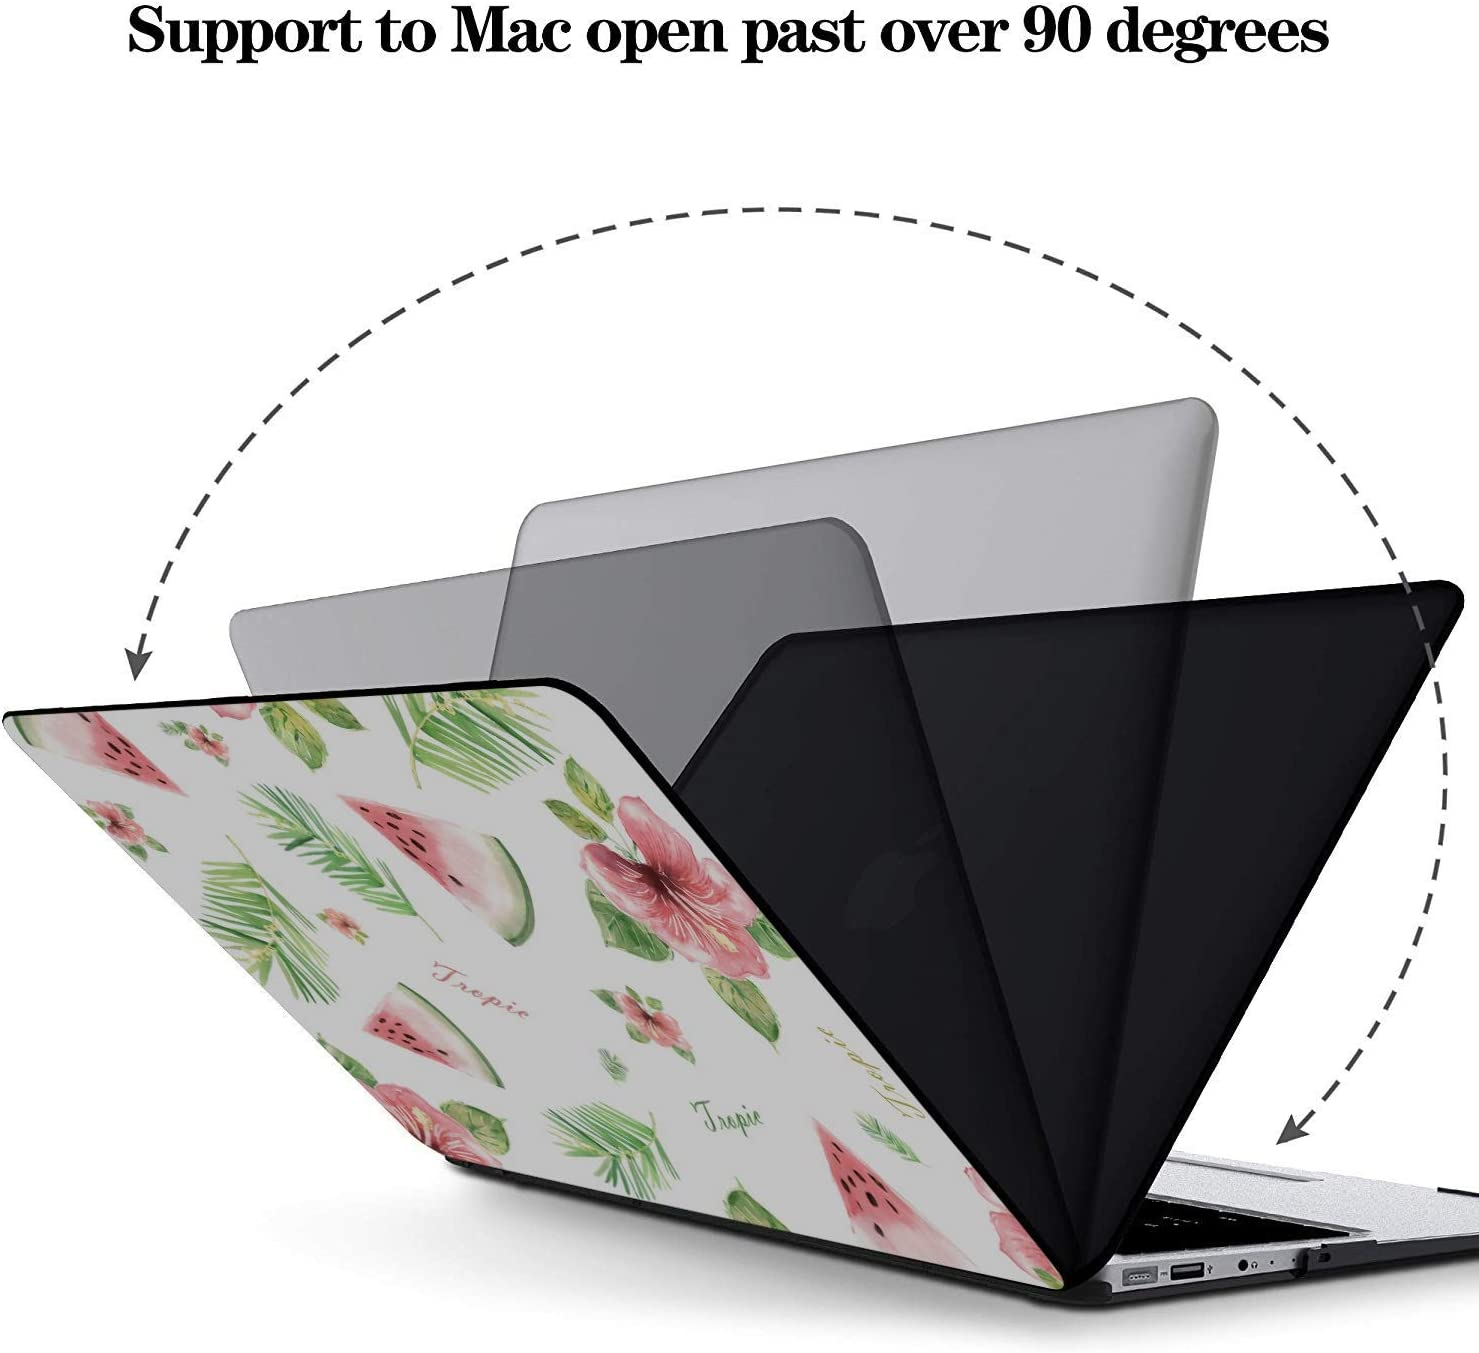 15 Inch Laptop Case Summer Fruit Watermelon Green Leaf Plastic Hard Shell Compatible Mac Air 11 Pro 13 15 MacBook Protective Case Protection for MacBook 2016-2019 Version